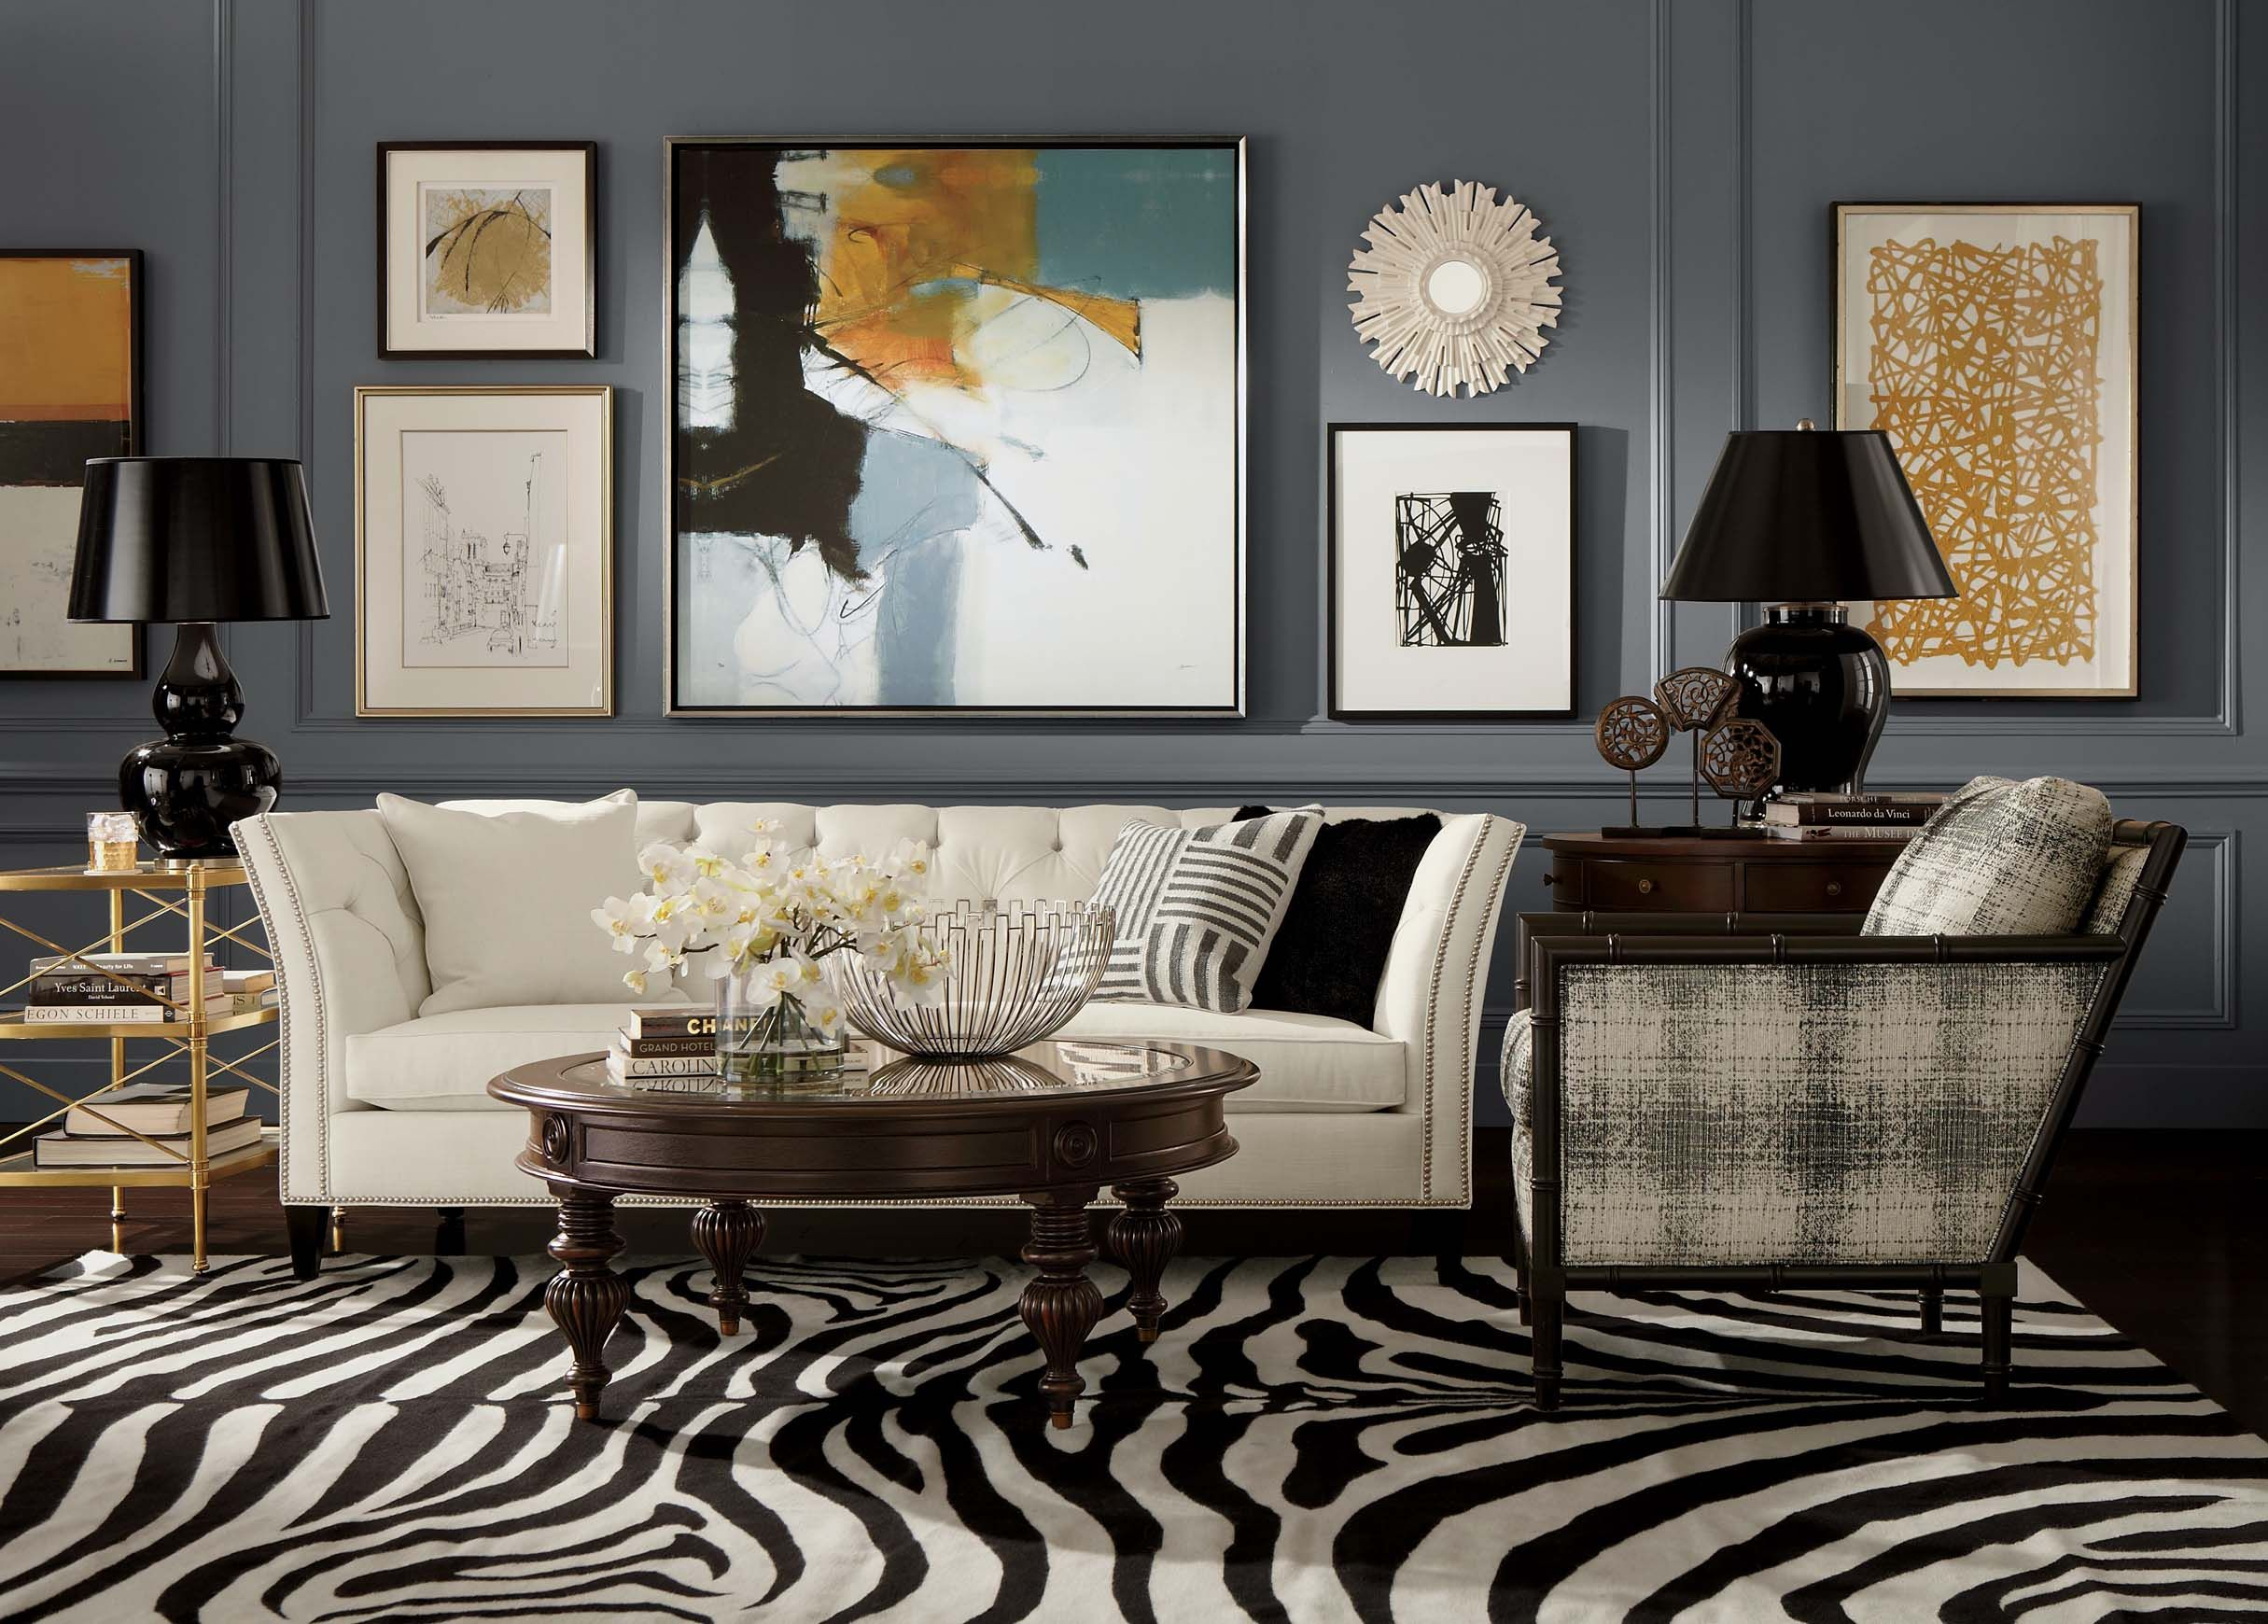 This Ethan Allen Zebra Rug In Expresso Ivory Gives This